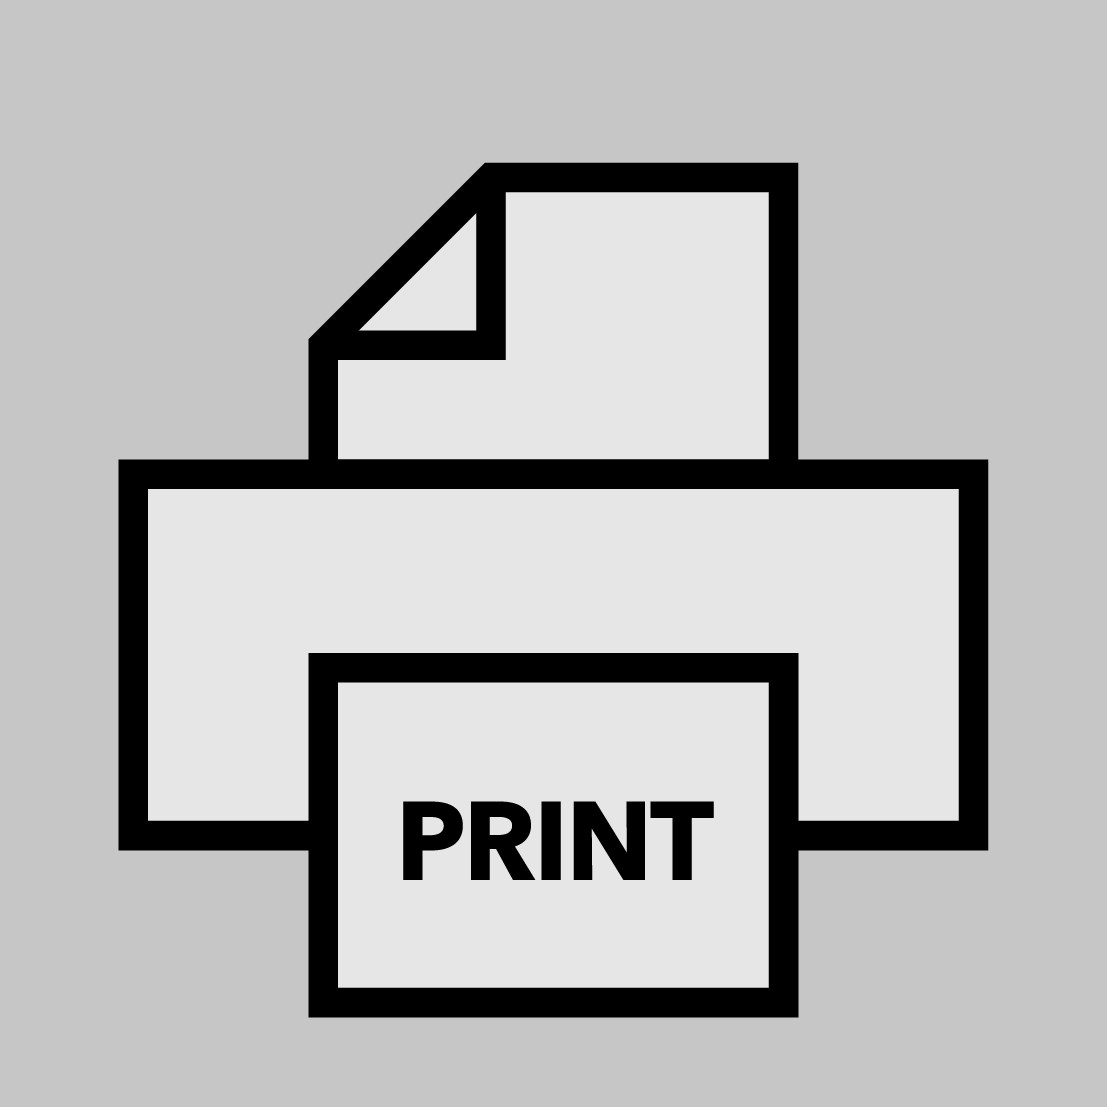 print-icon-02.png